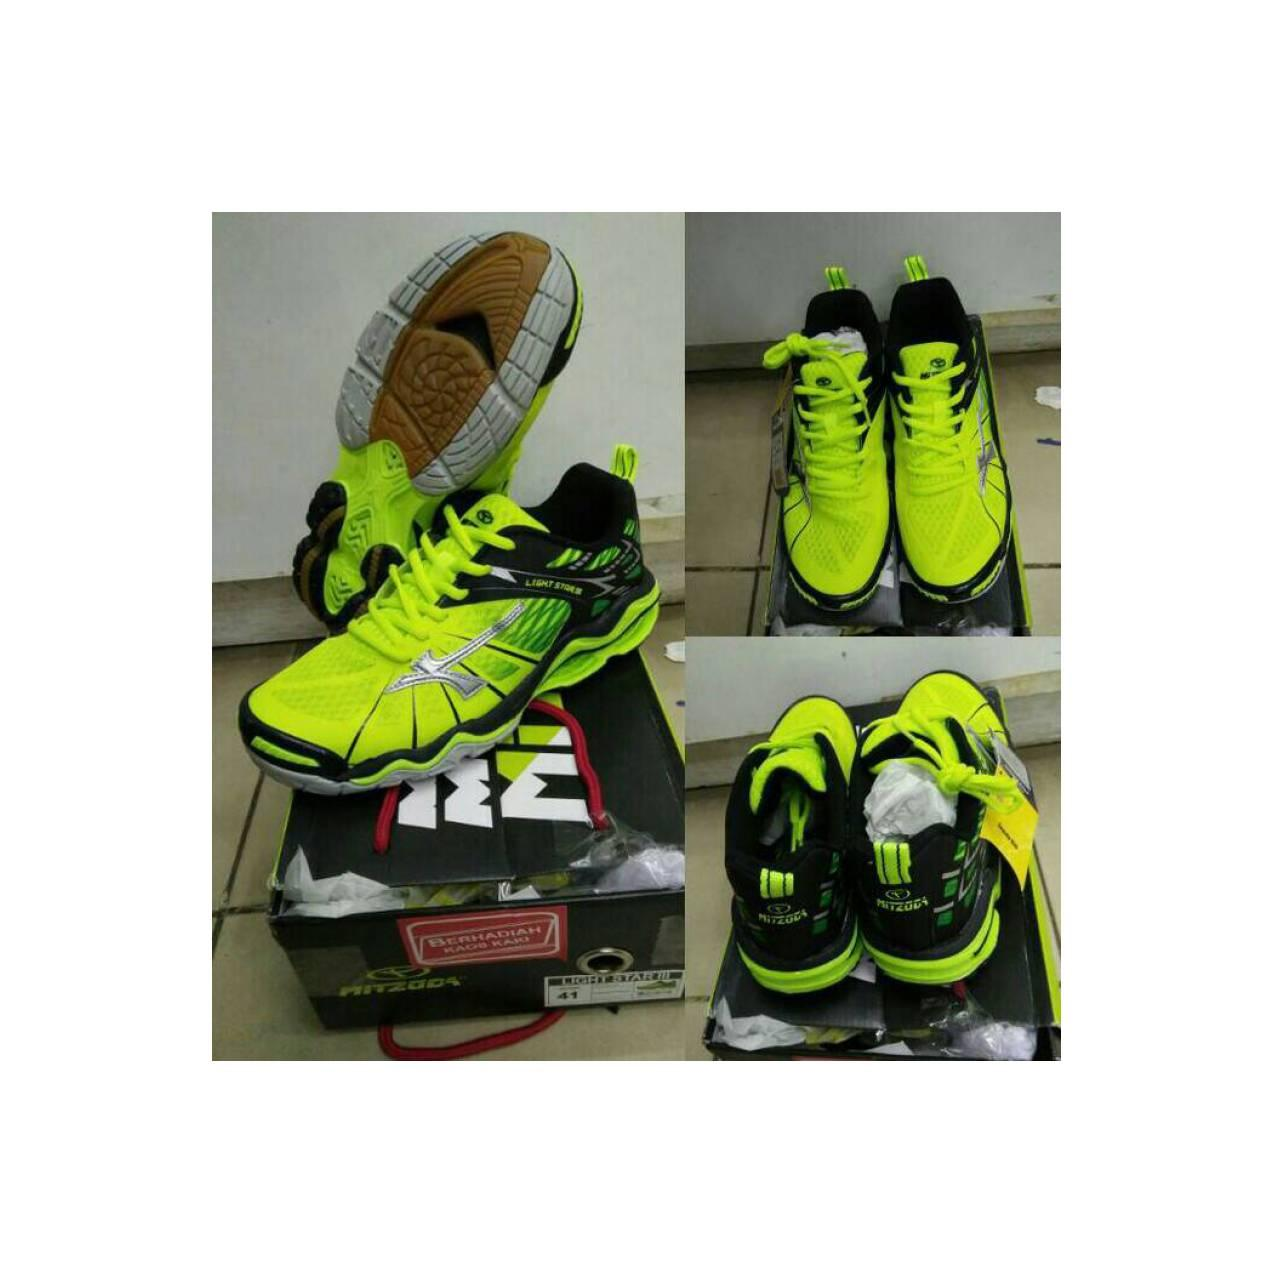 Sepatu Volly / Volley / Voli Mitzuda Light Star III lemon - Original